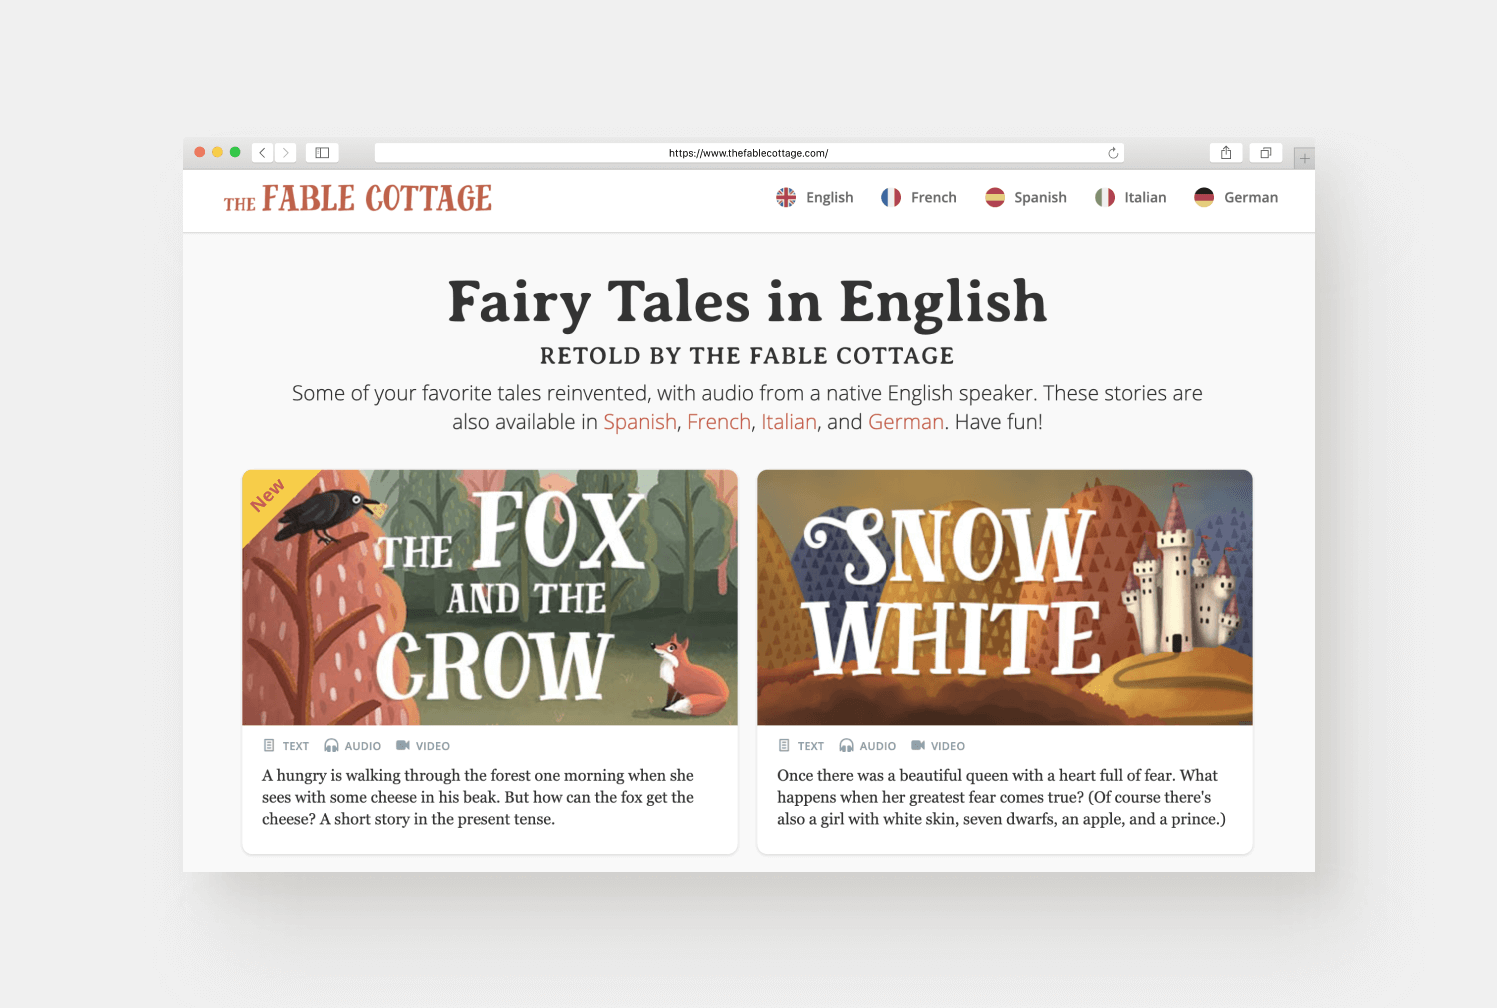 The Fable Cottage - Learning Languages With Fairytales